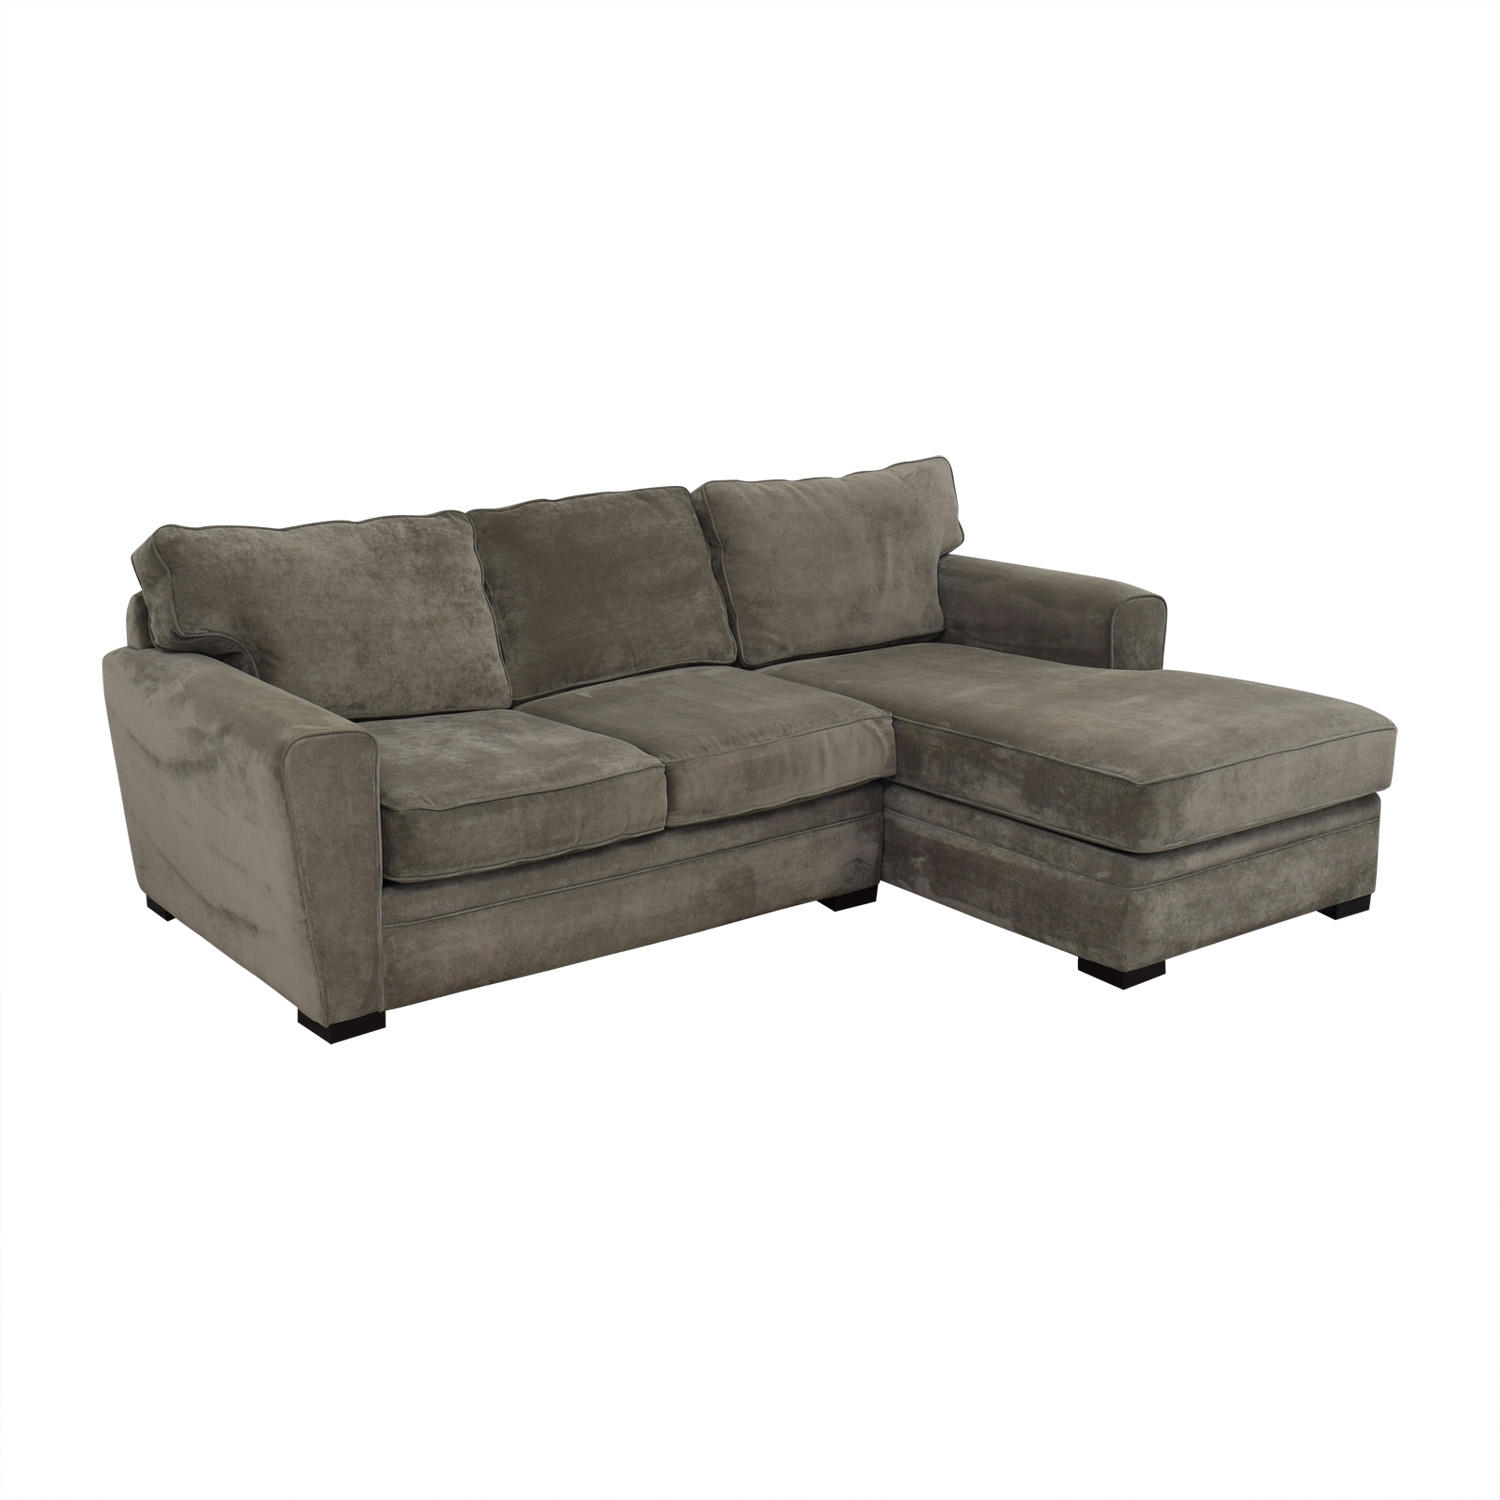 Raymour & Flanigan Raymour & Flanigan Artemis II Sectional Sofa with Chaise nj